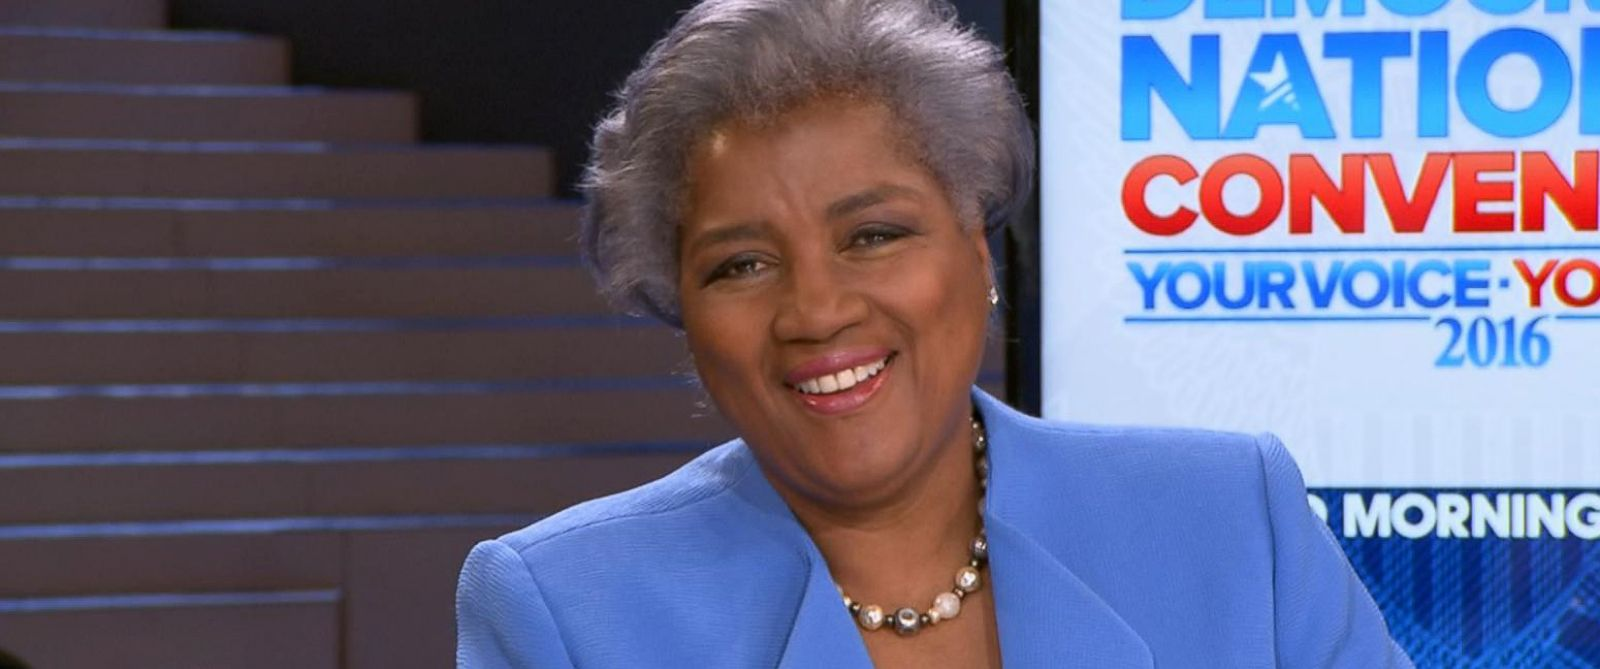 PHOTO: Donna Brazile weighs in on the DNC email leak and how she plans to lead the Democratic Party forward in her new role.